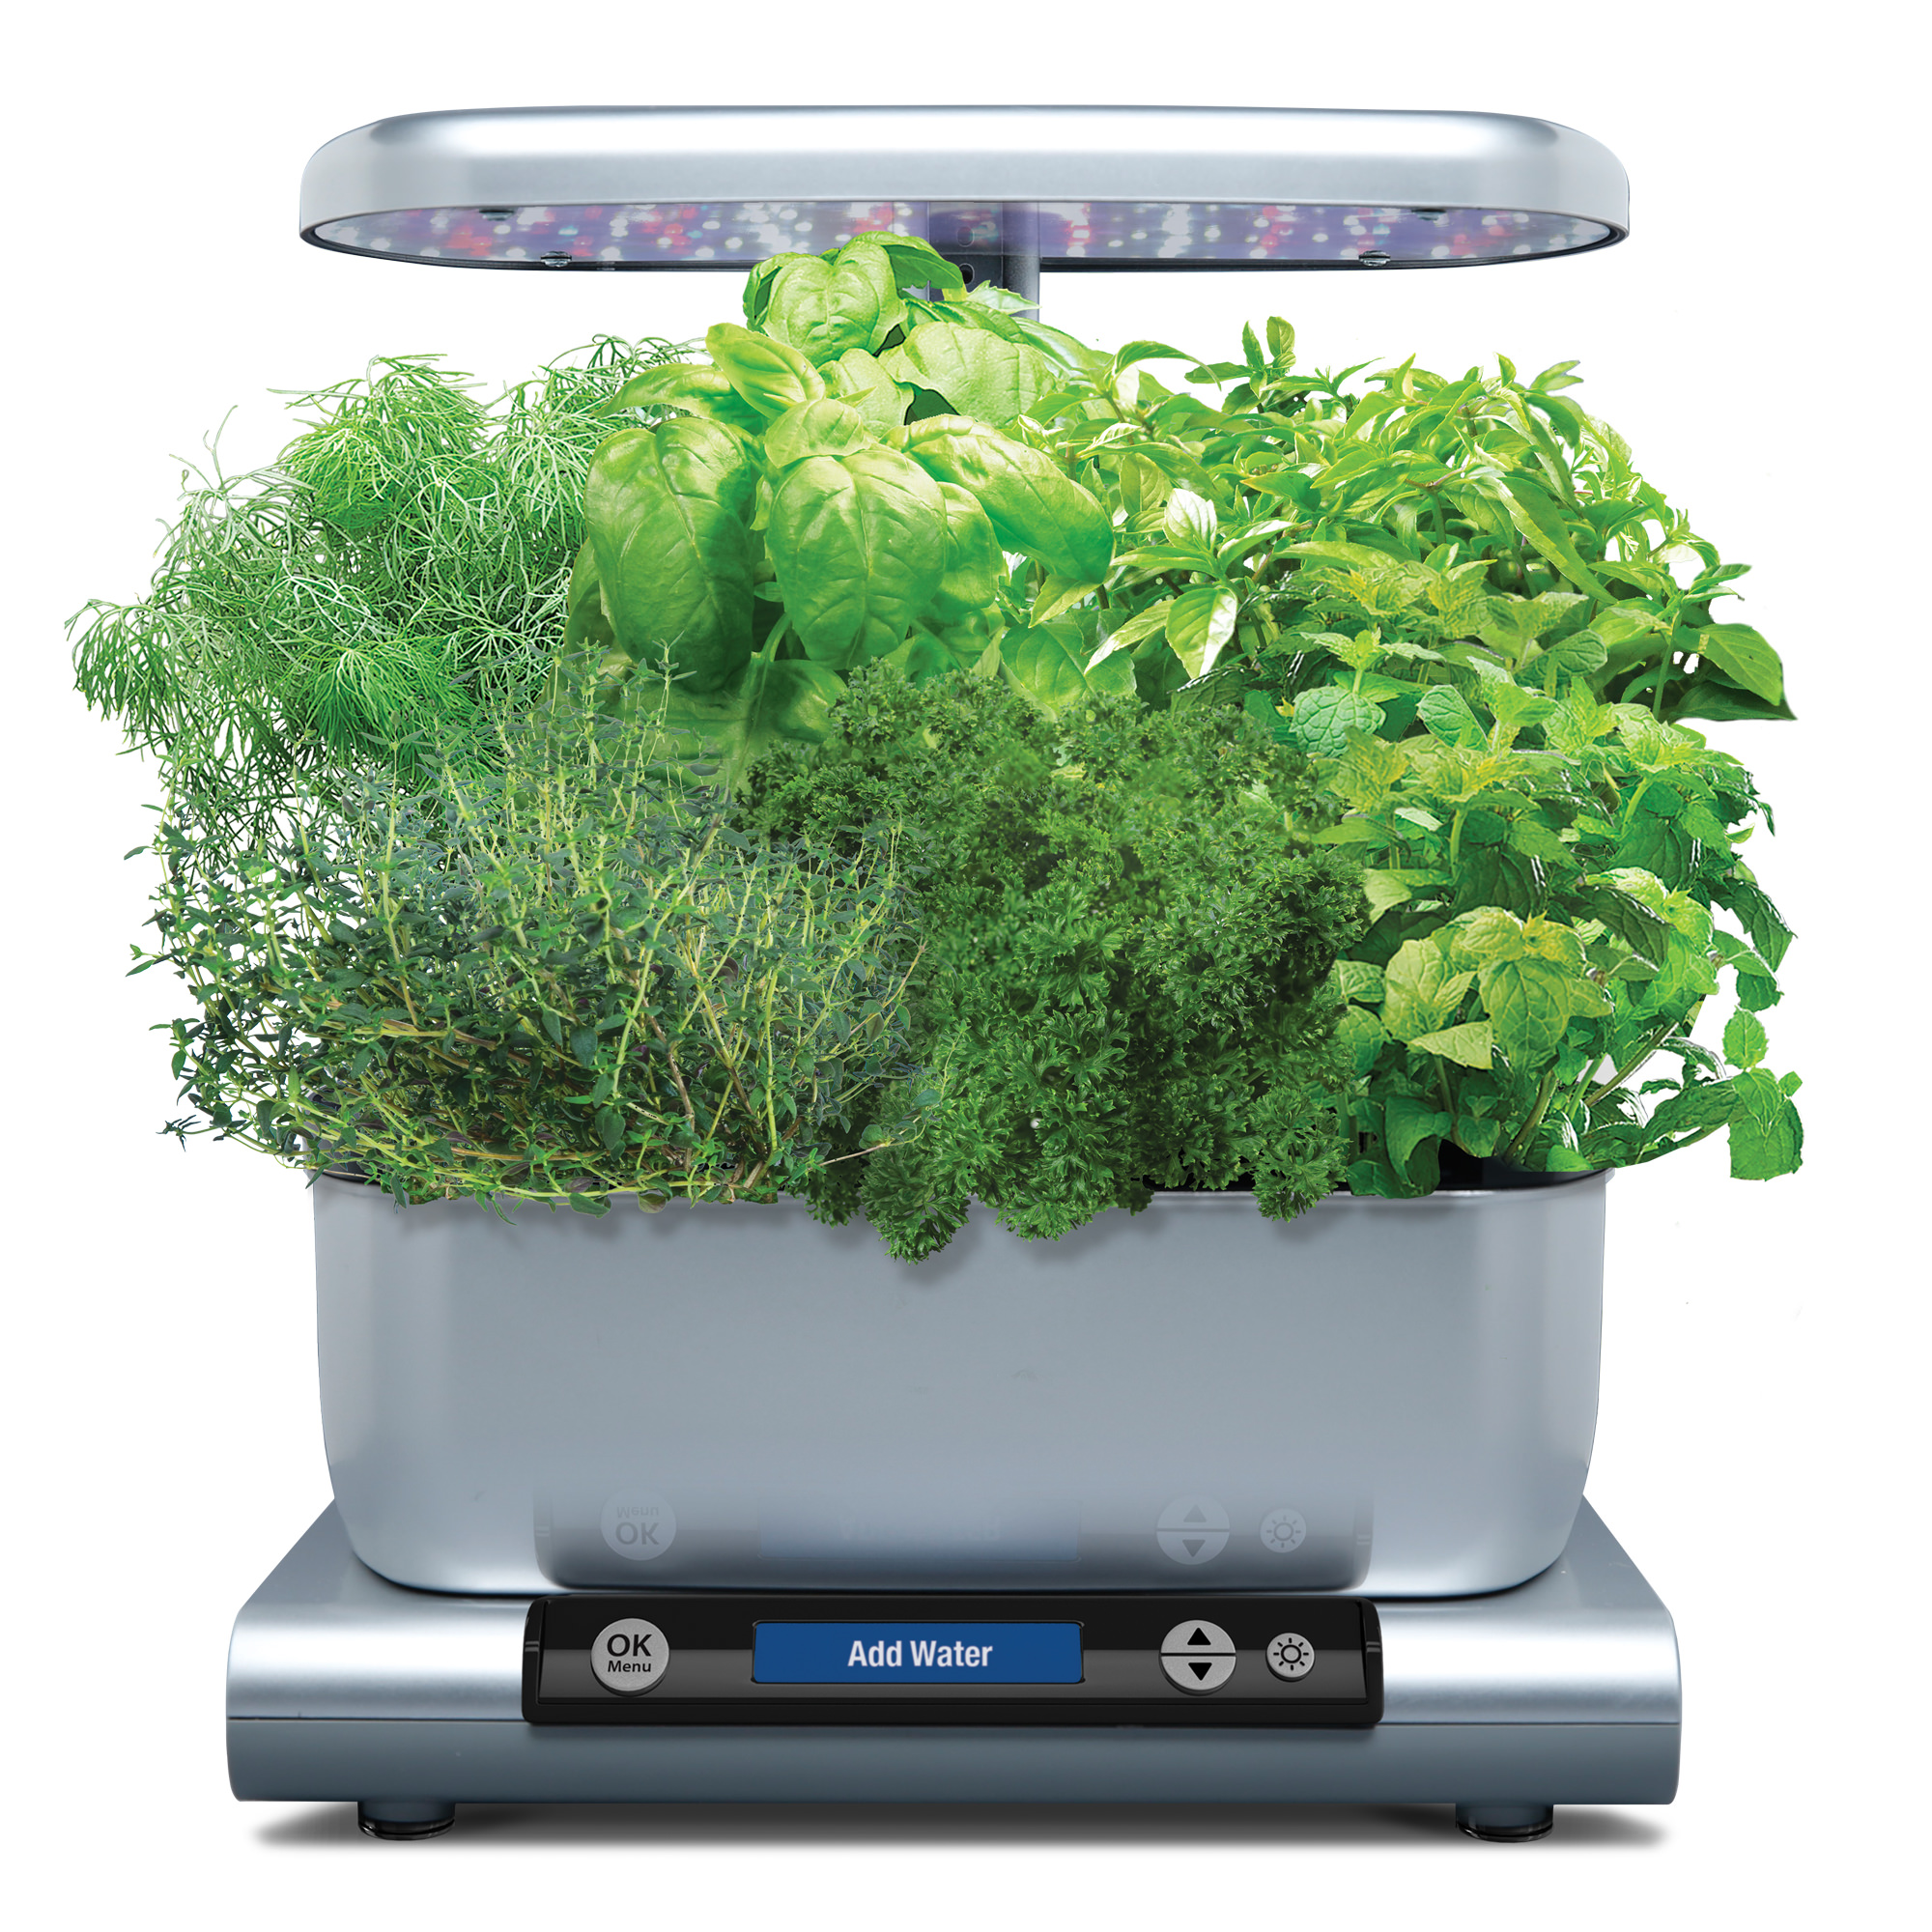 AeroGarden Harvest Premium, Platinum with Gourmet Herbs Seed Kit